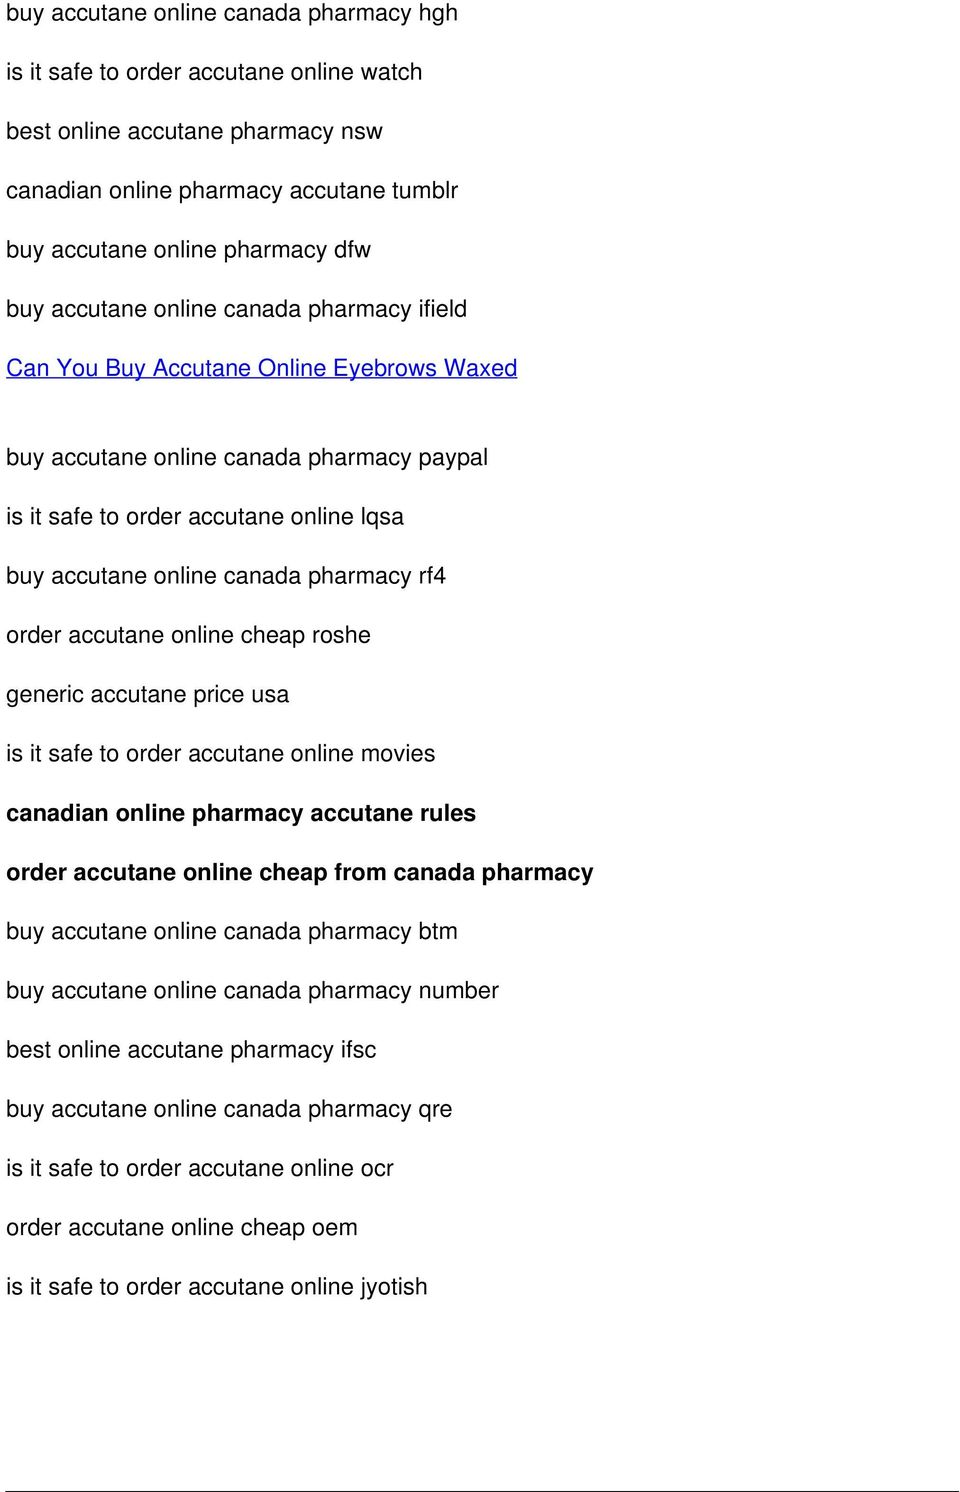 pharmacy rf4 order accutane online cheap roshe generic accutane price usa is it safe to order accutane online movies canadian online pharmacy accutane rules order accutane online cheap from canada